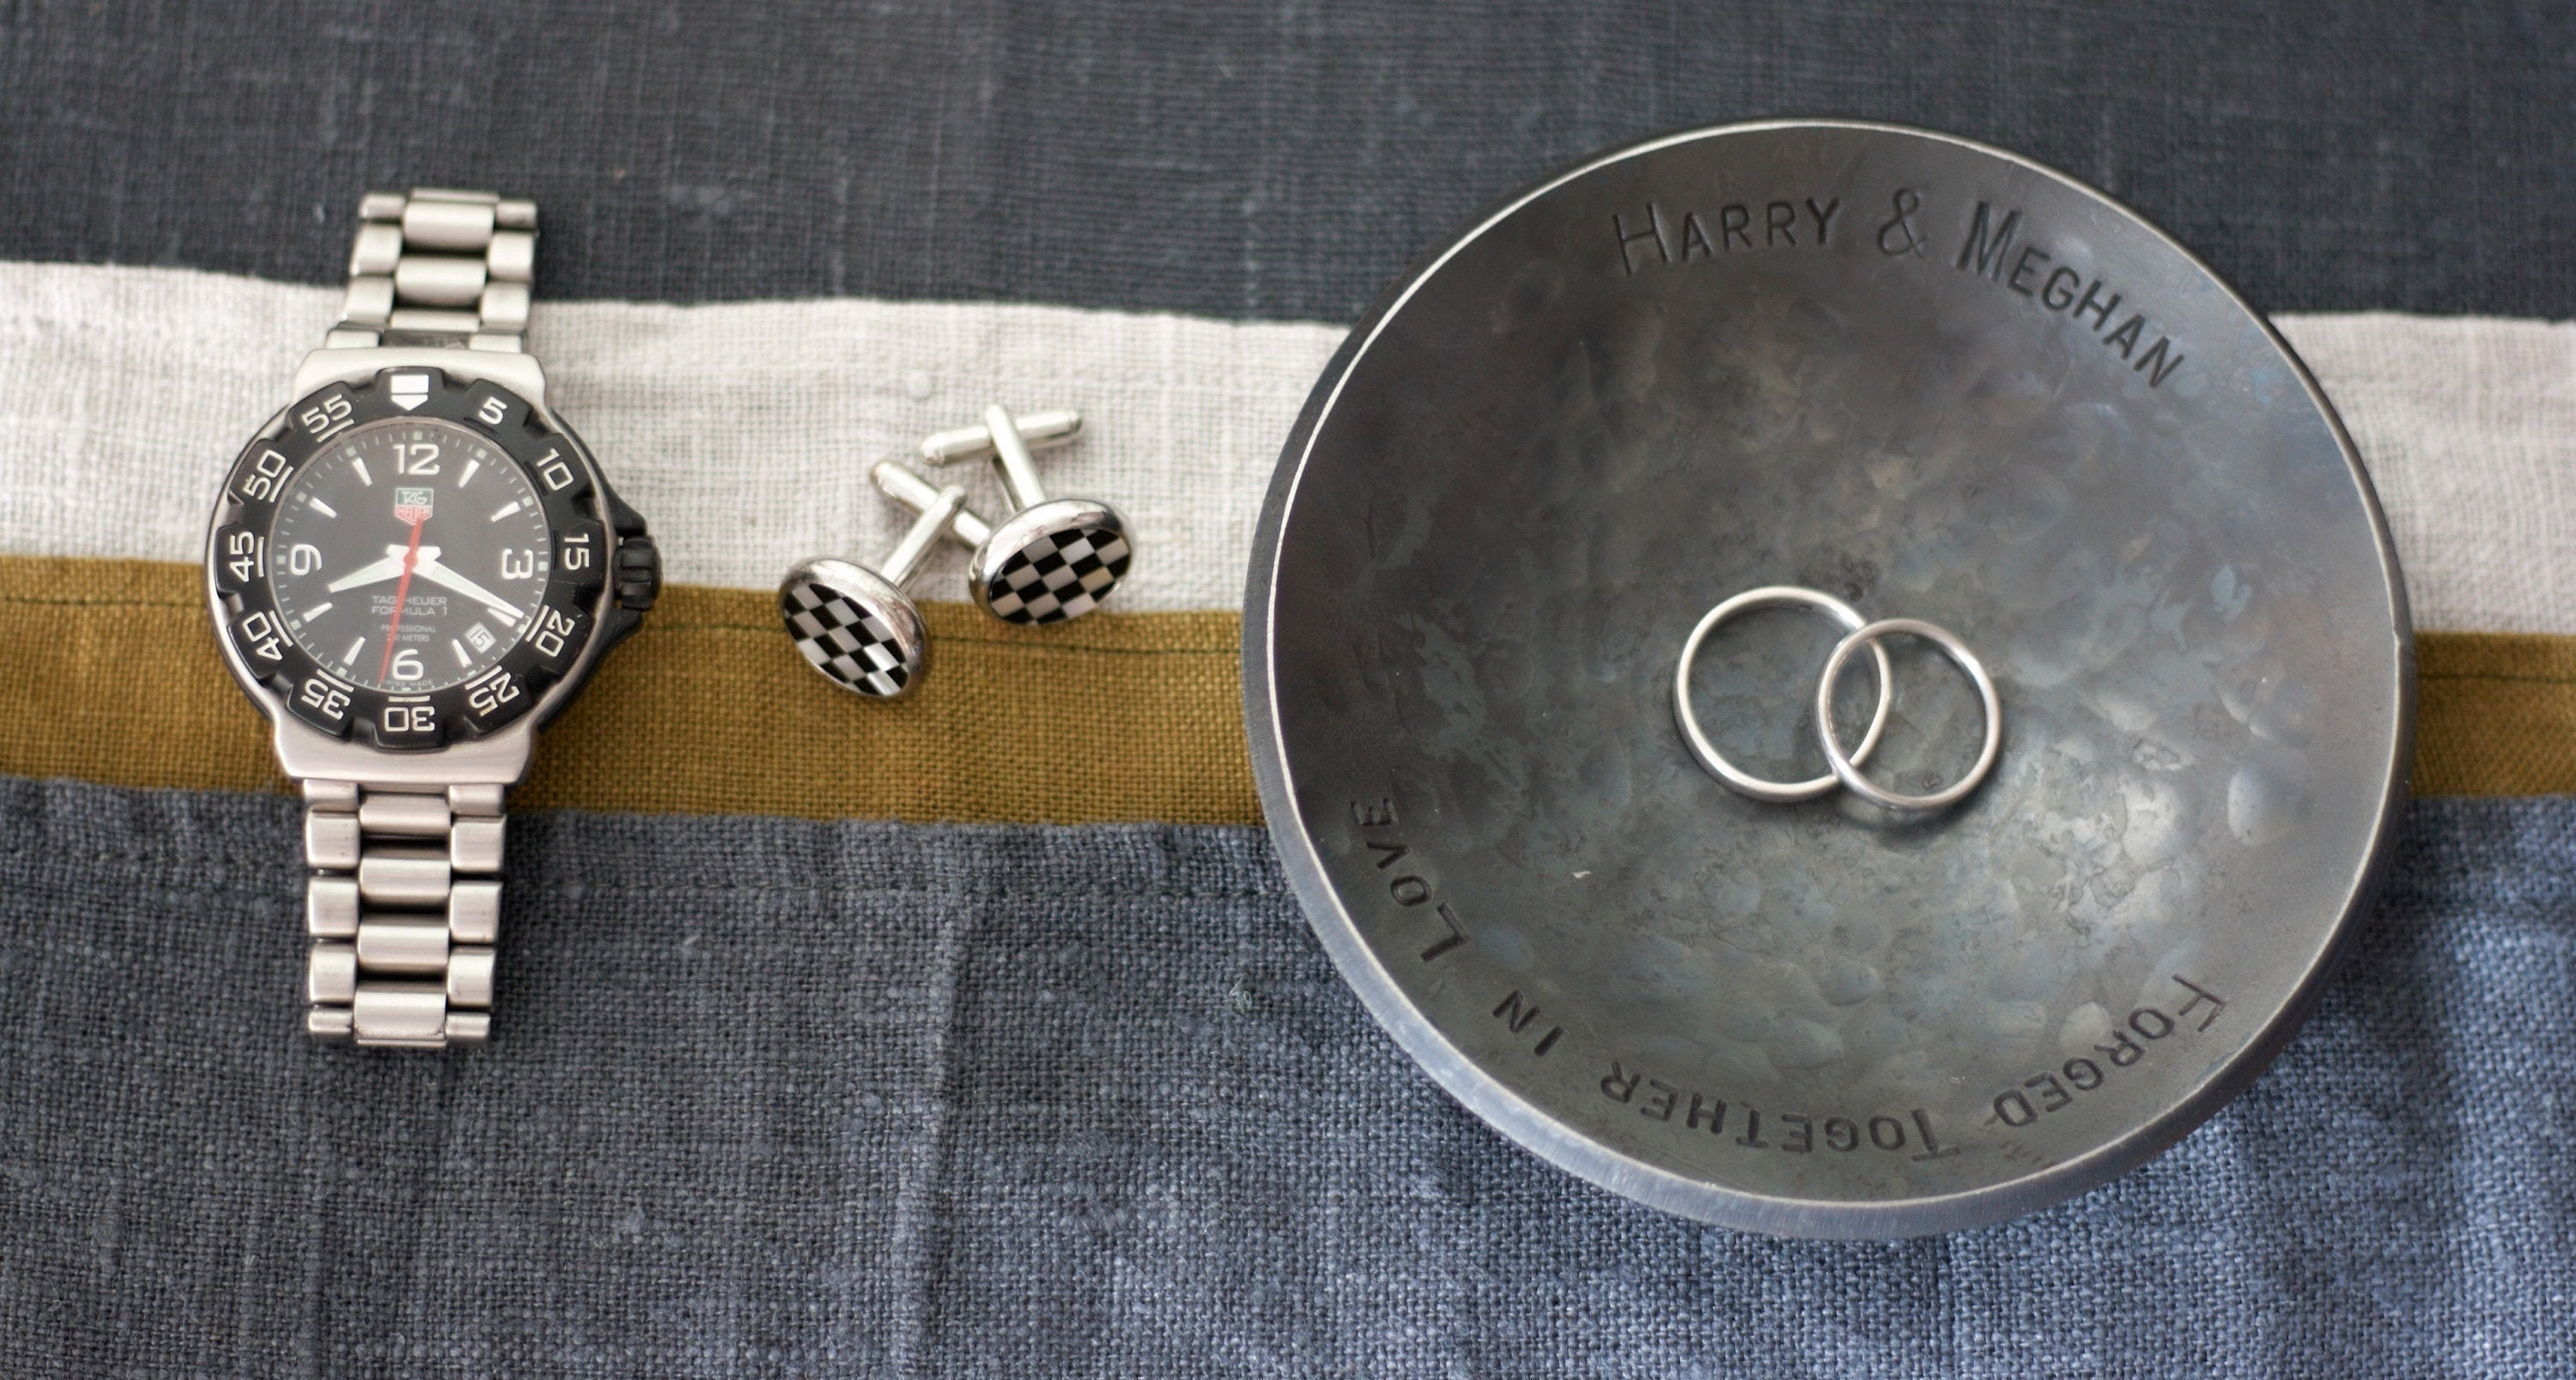 6th Year Wedding Anniversary Gifts For Him: Iron Ring Dish